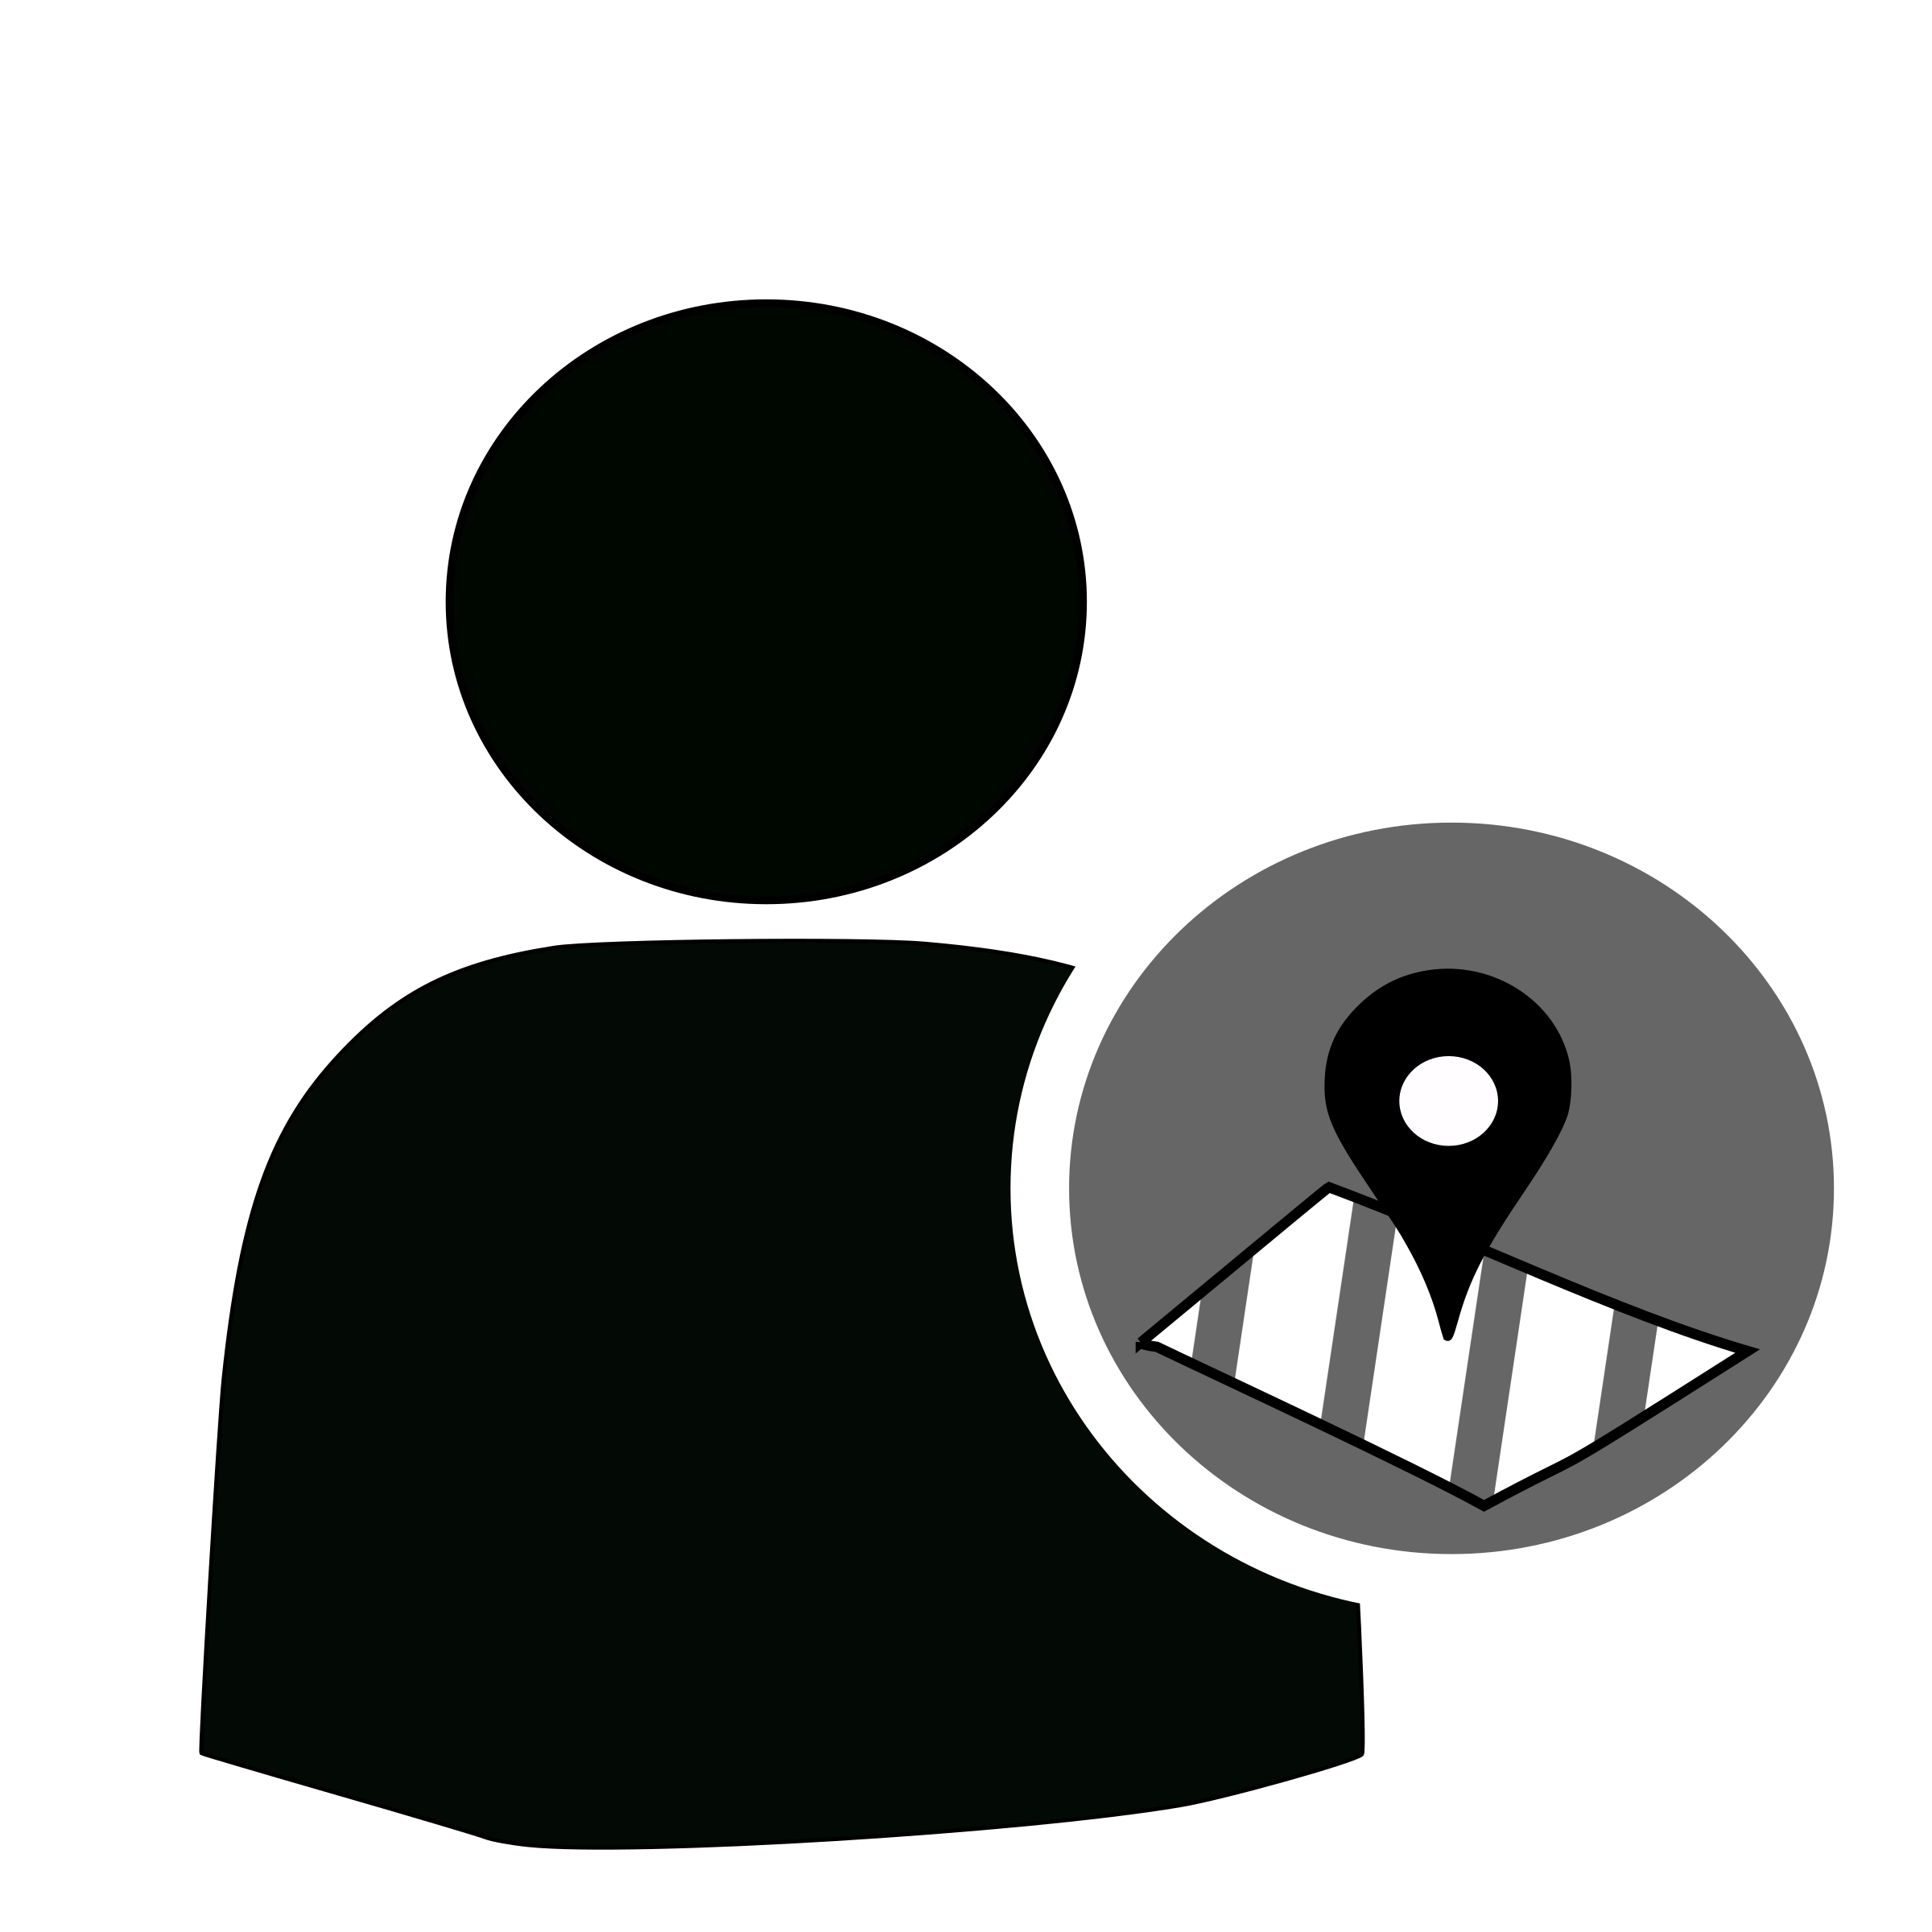 Maps clipart location. User map big image